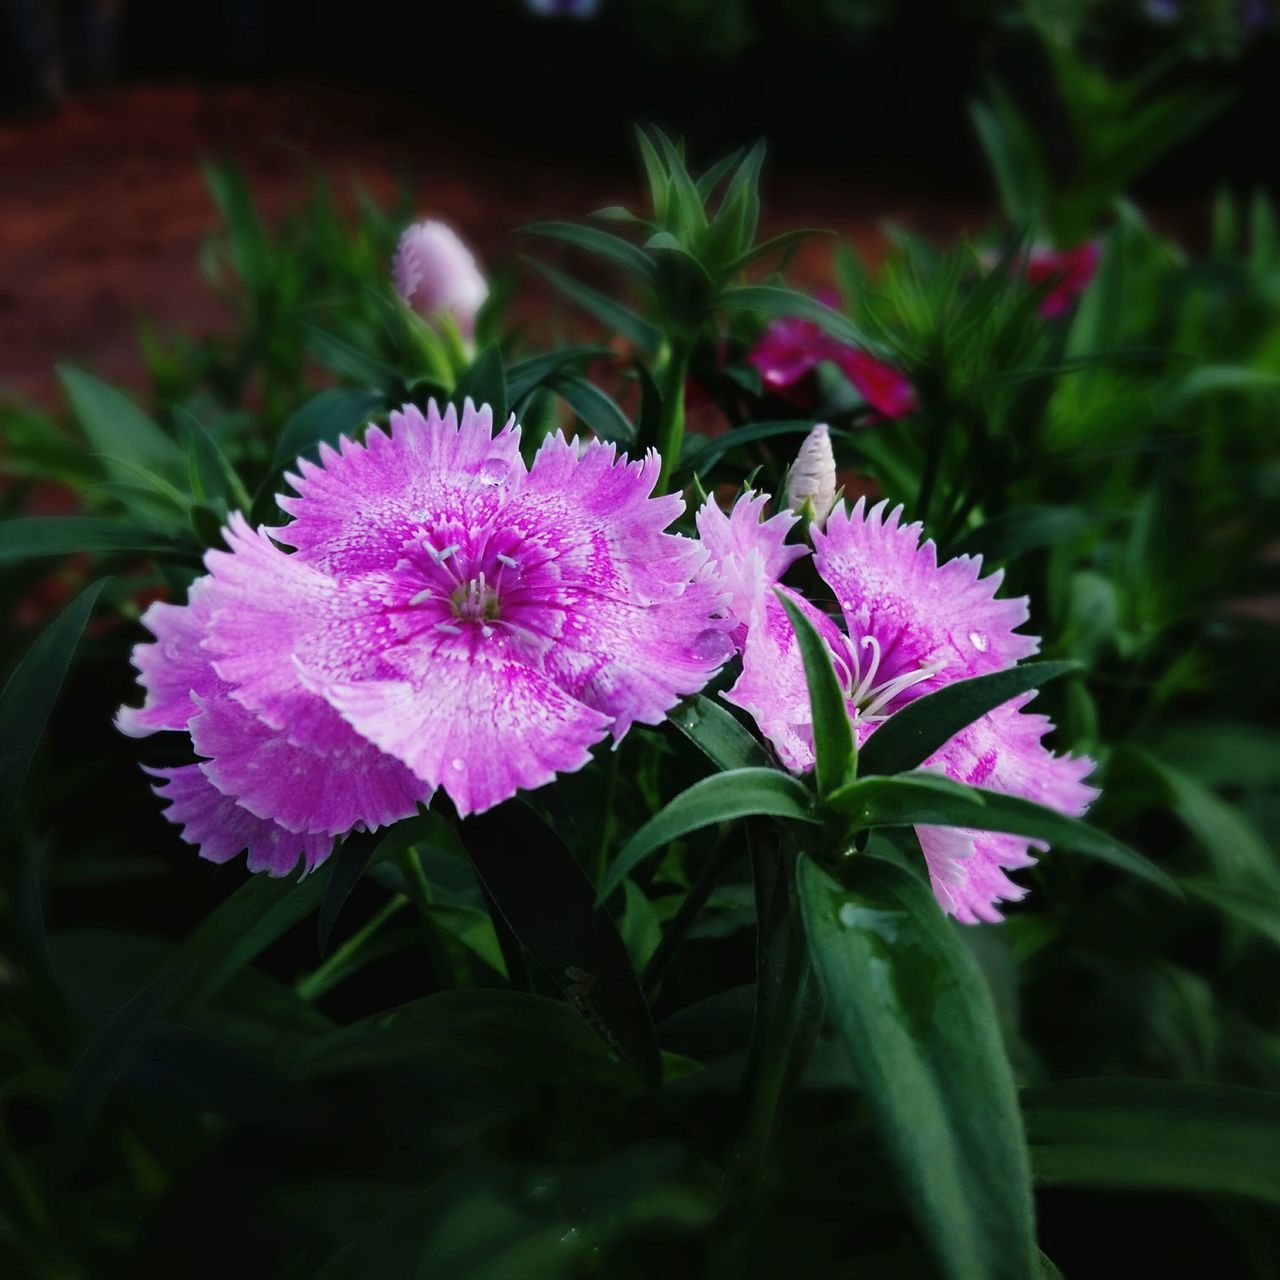 flower, growth, petal, nature, fragility, beauty in nature, leaf, plant, no people, freshness, flower head, close-up, pink color, outdoors, day, blooming, green color